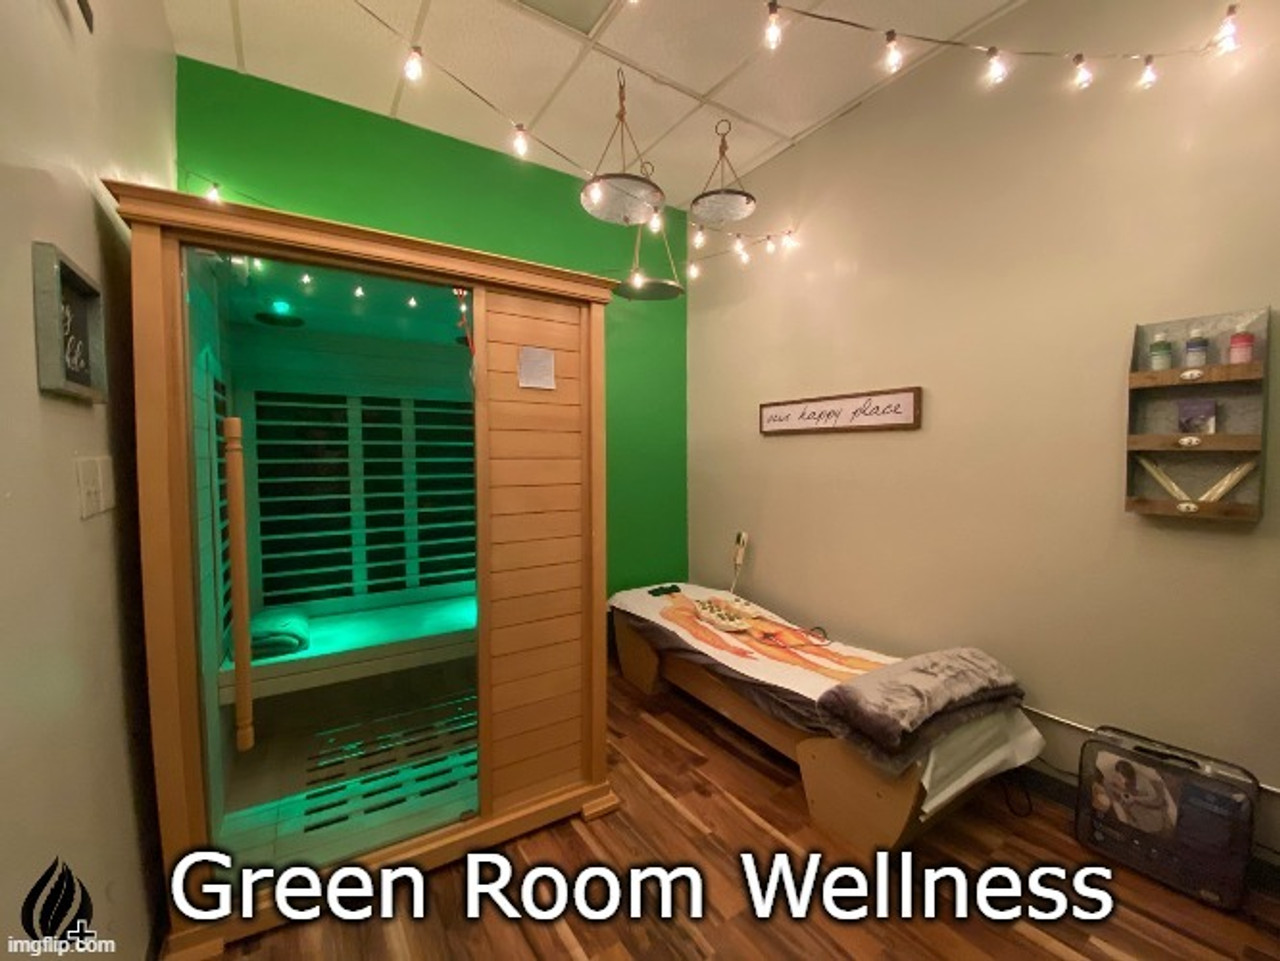 Green Room Wellness